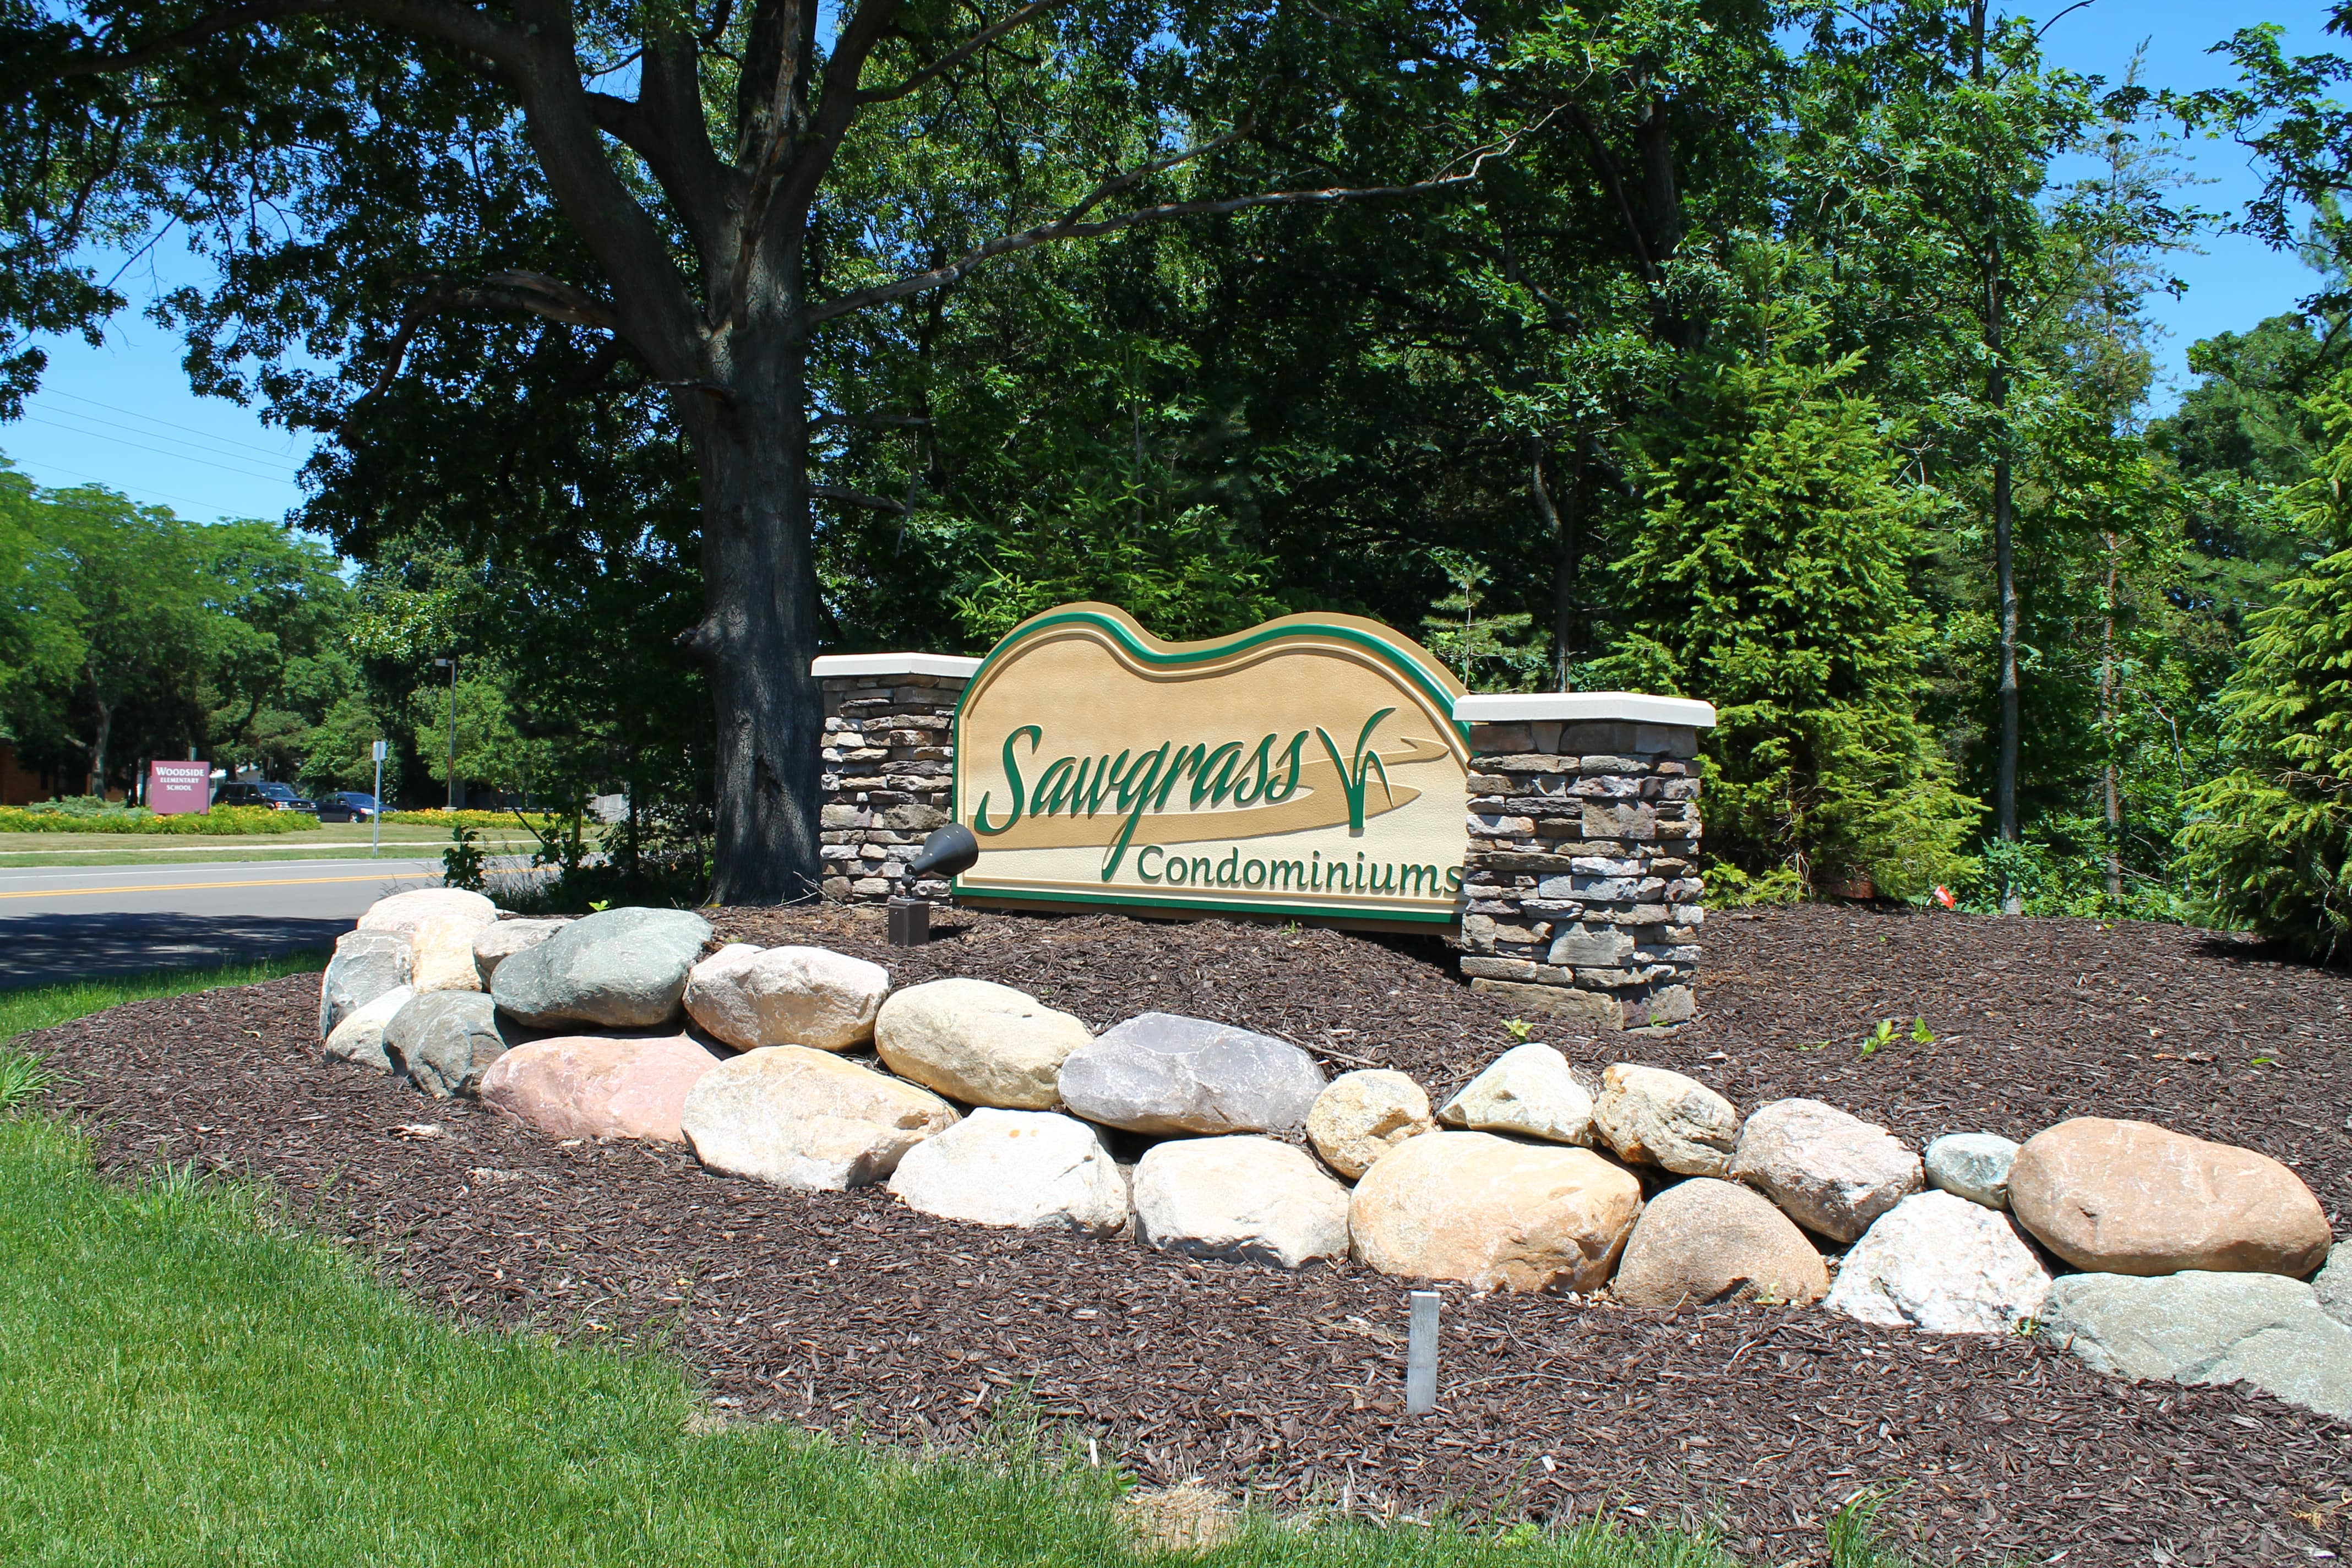 Front Entrance sign of Sawgrass Condominiums